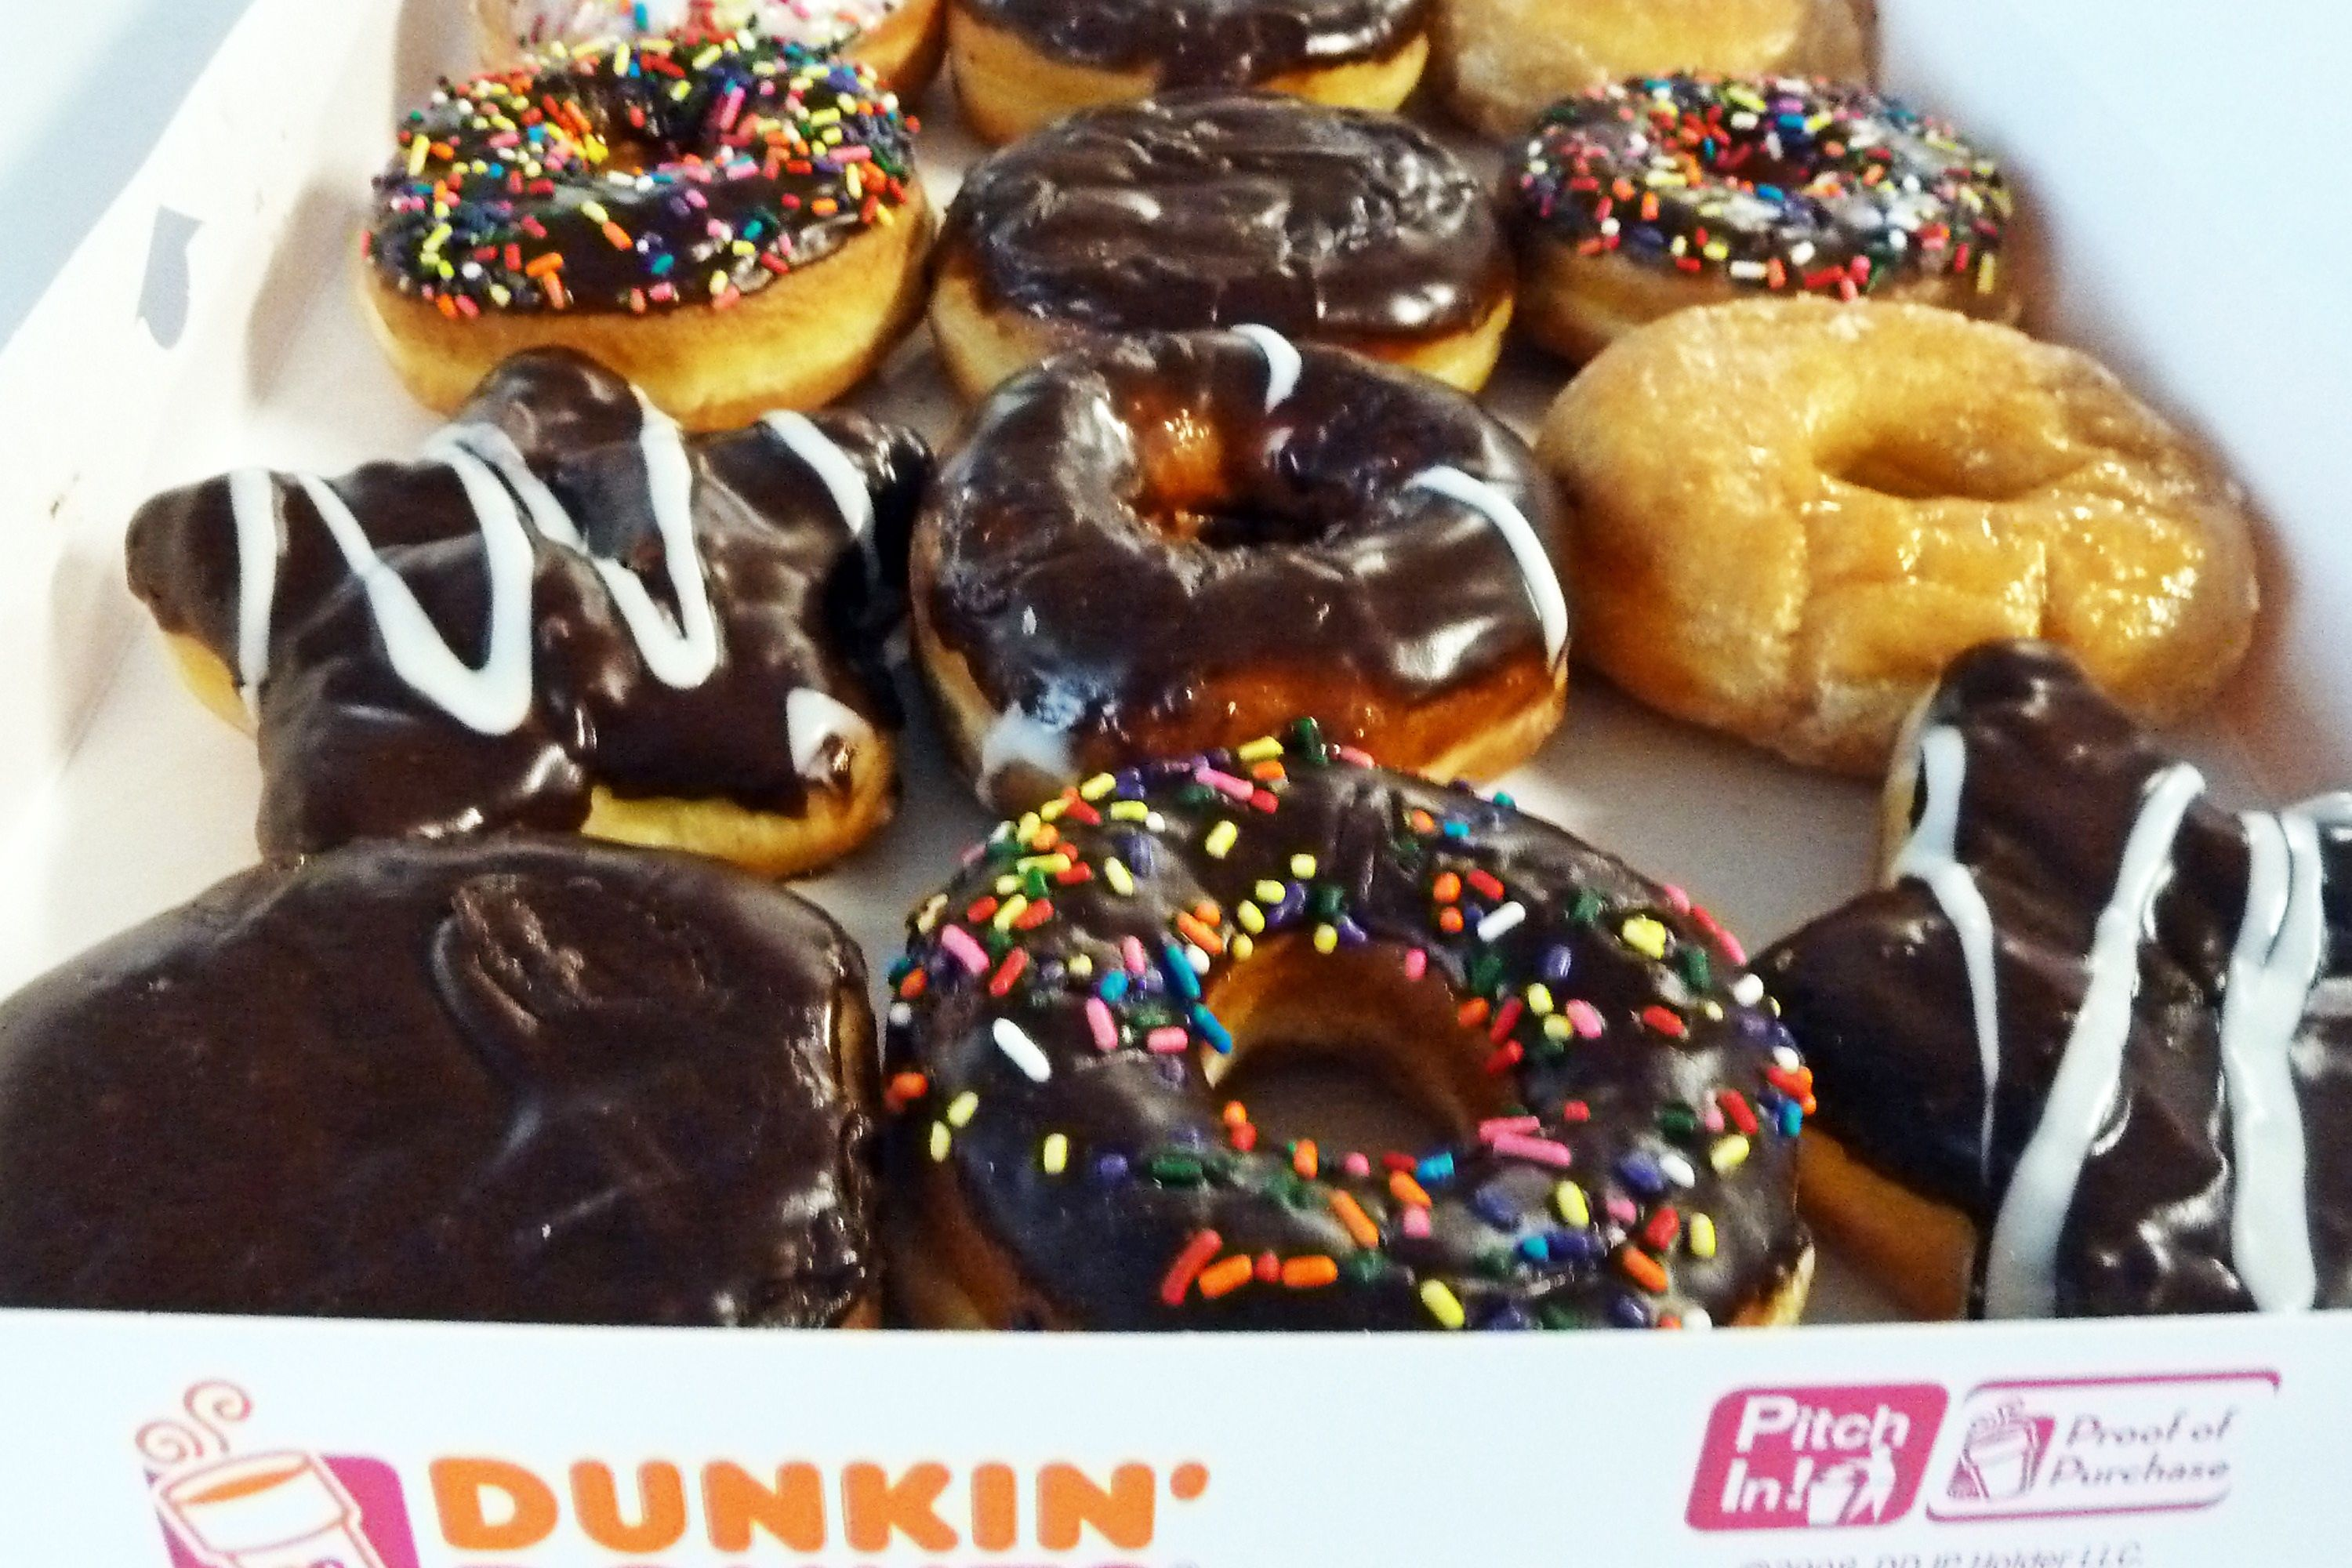 Beware of This Dunkin' Donuts Coupon Floating Around Offering Free Doughnuts